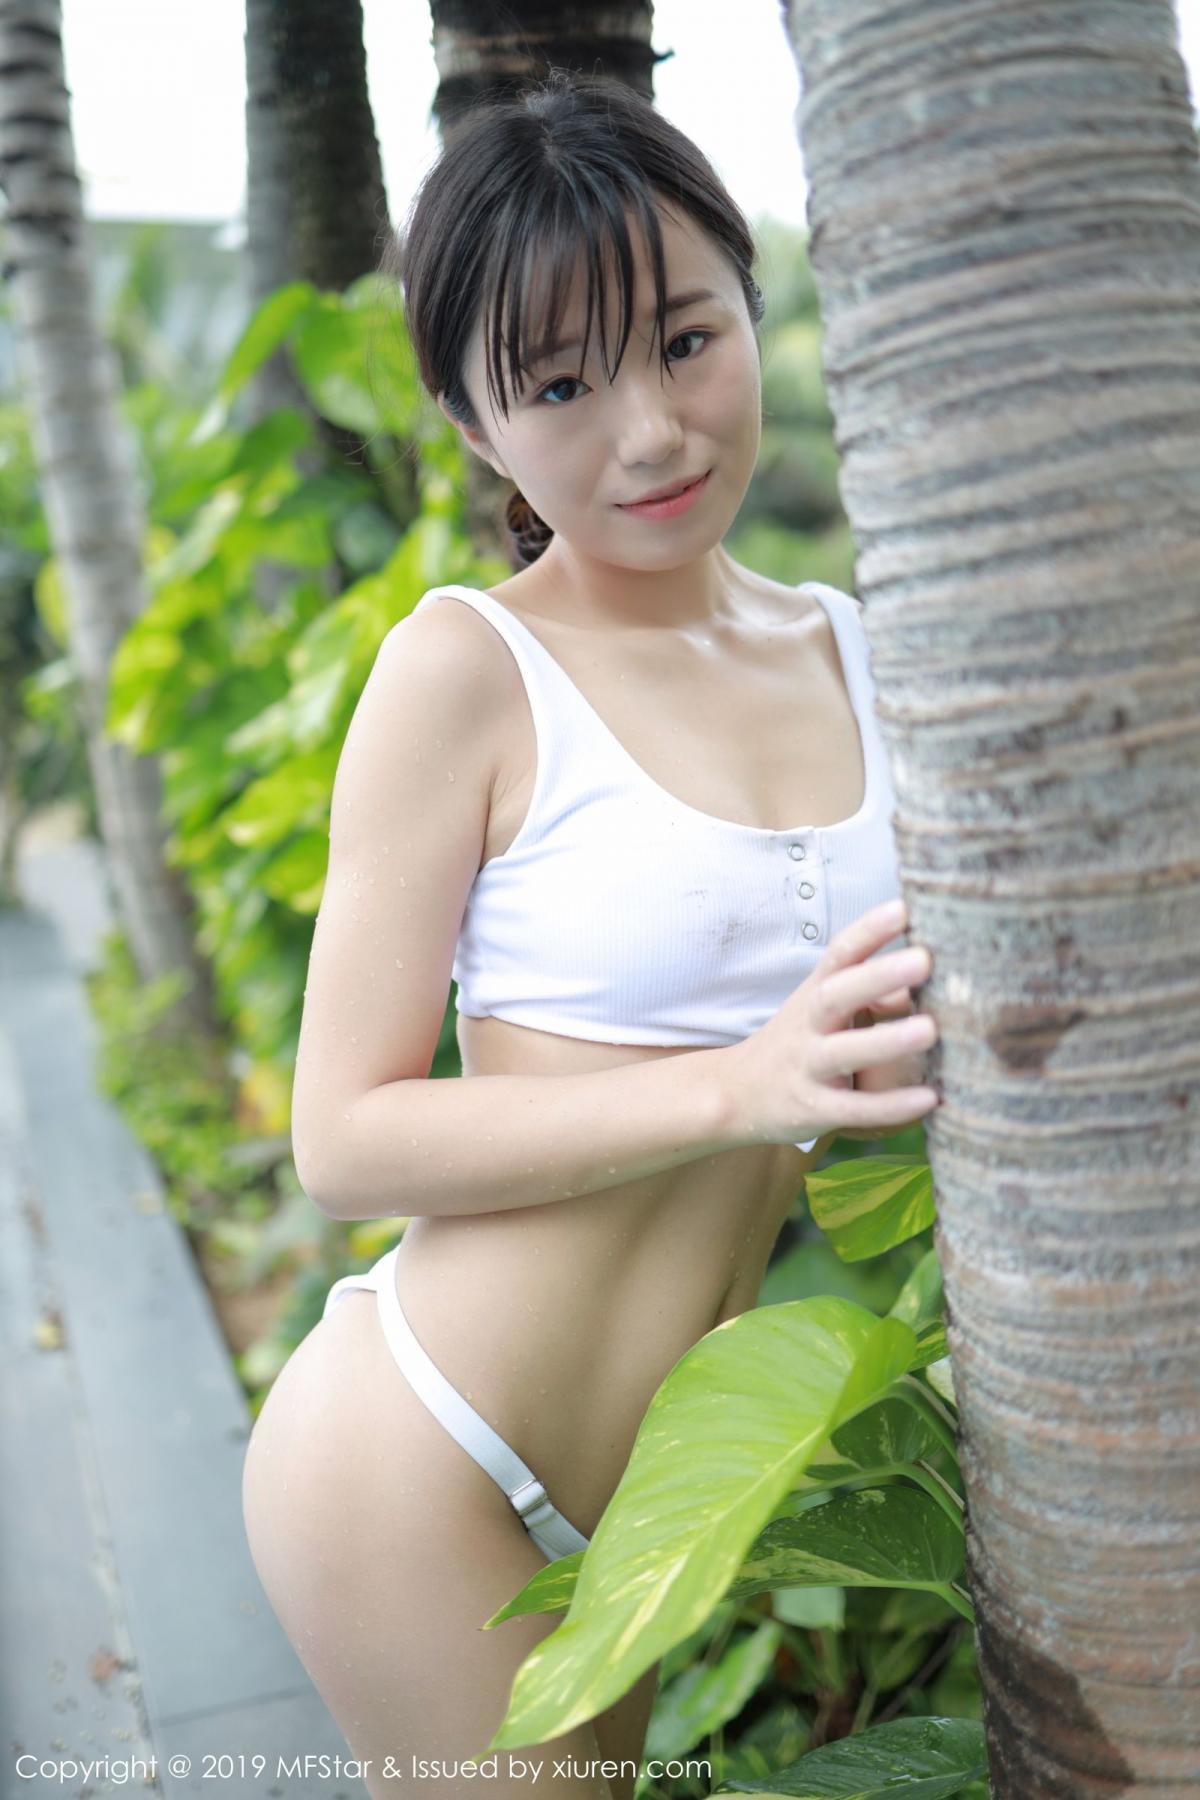 [XiuRen] Vol.214 Cang Jing You Xiang 51P, Bikini, Cang Jing You Xiang, Swim Pool, Xiuren